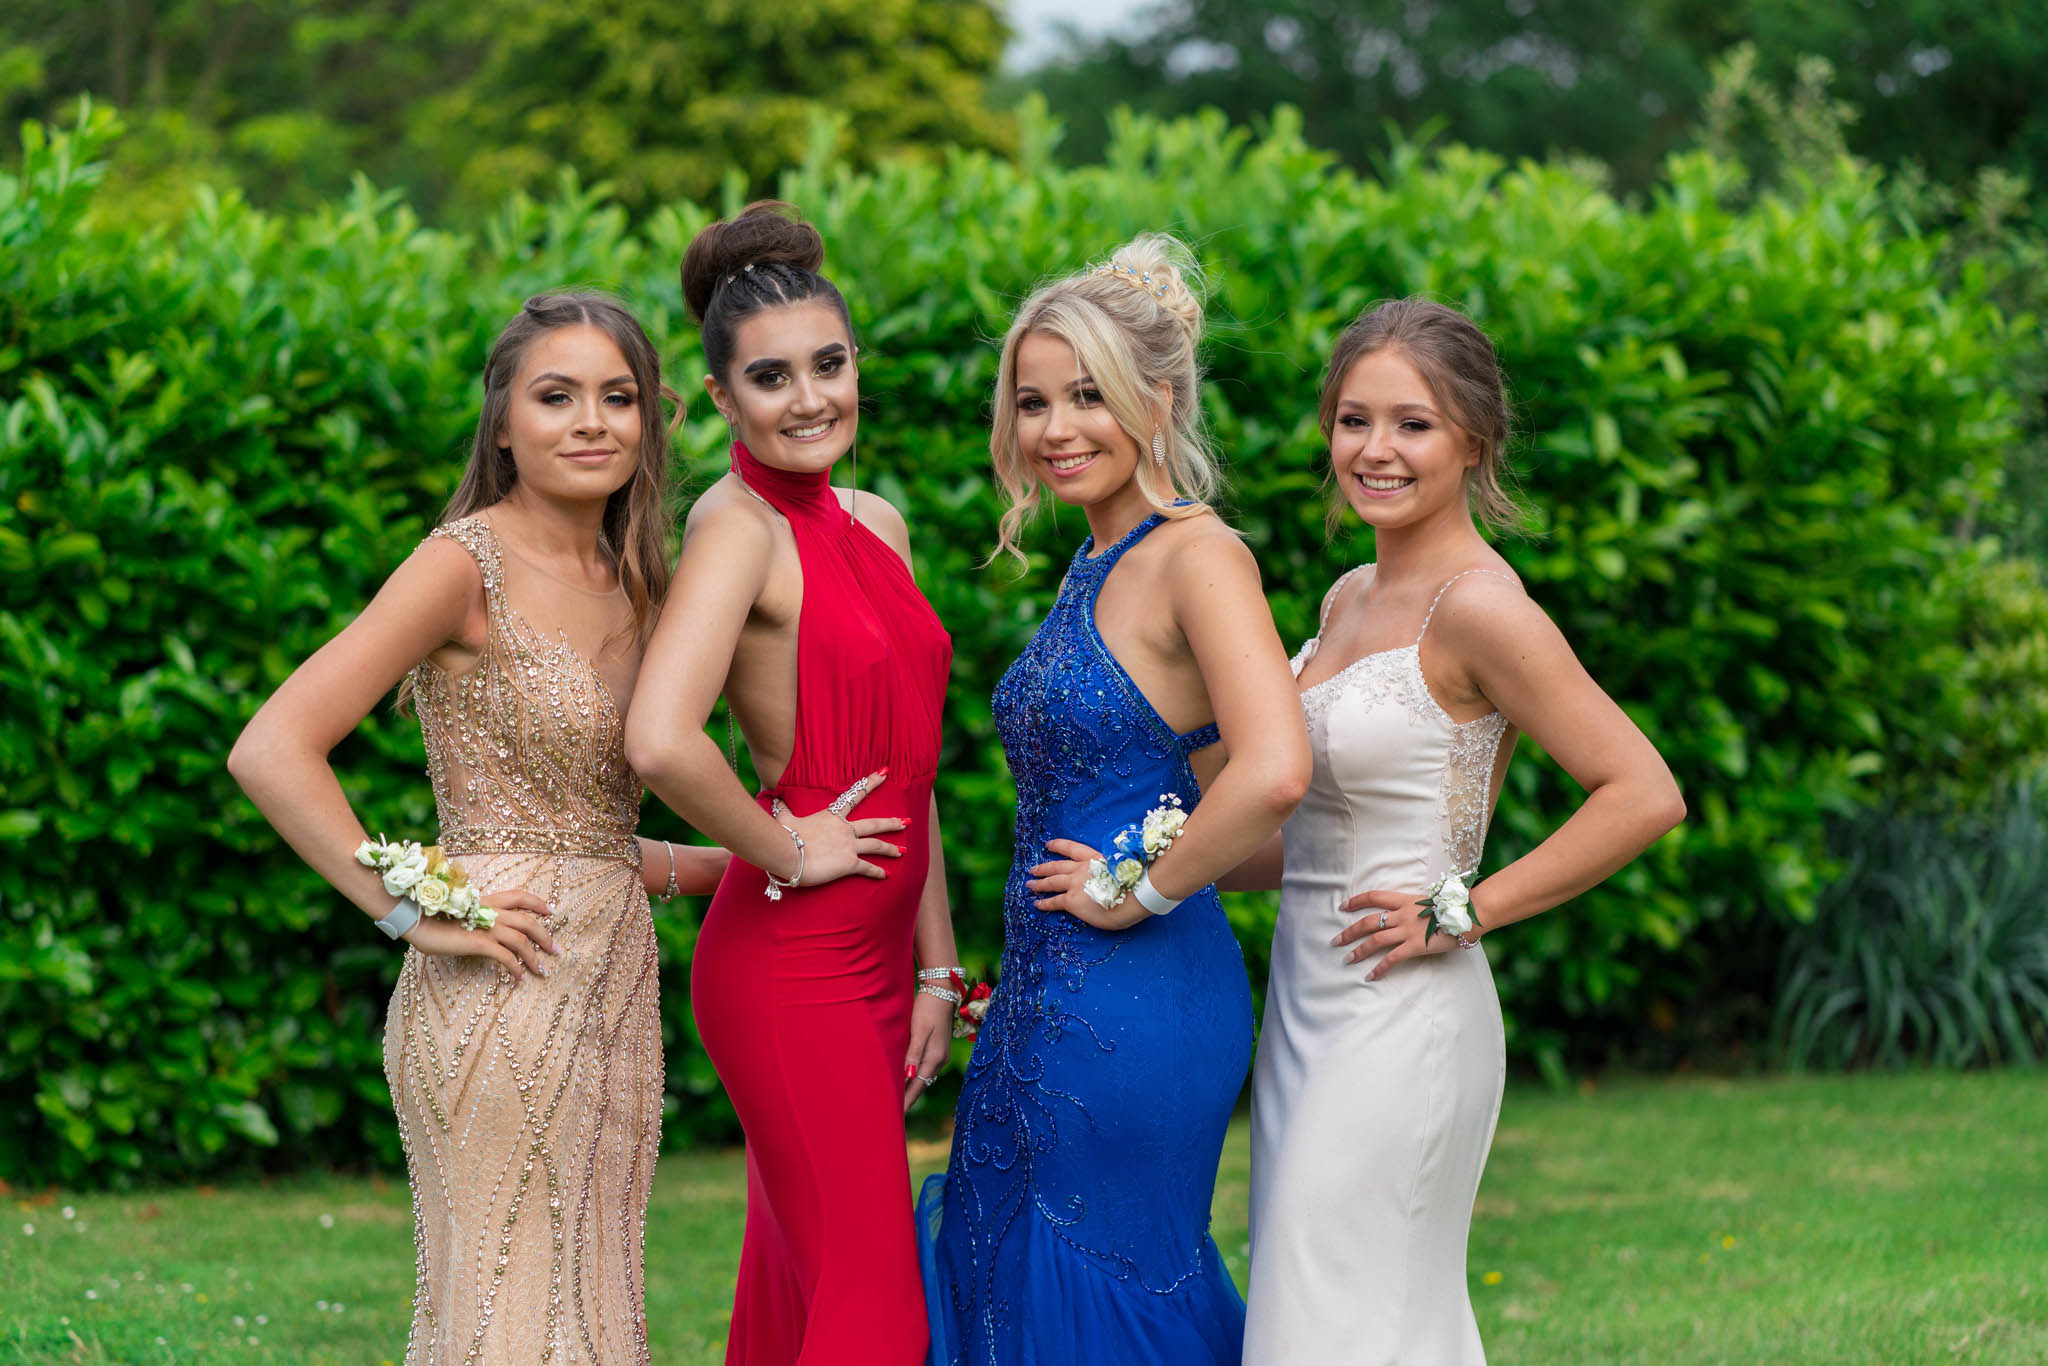 Proms - Pay per image or pay per event with unlimited photos-- Full quality digital images- Online album to order, view, share, download and print- Beautiful slideshow to share with family & friends